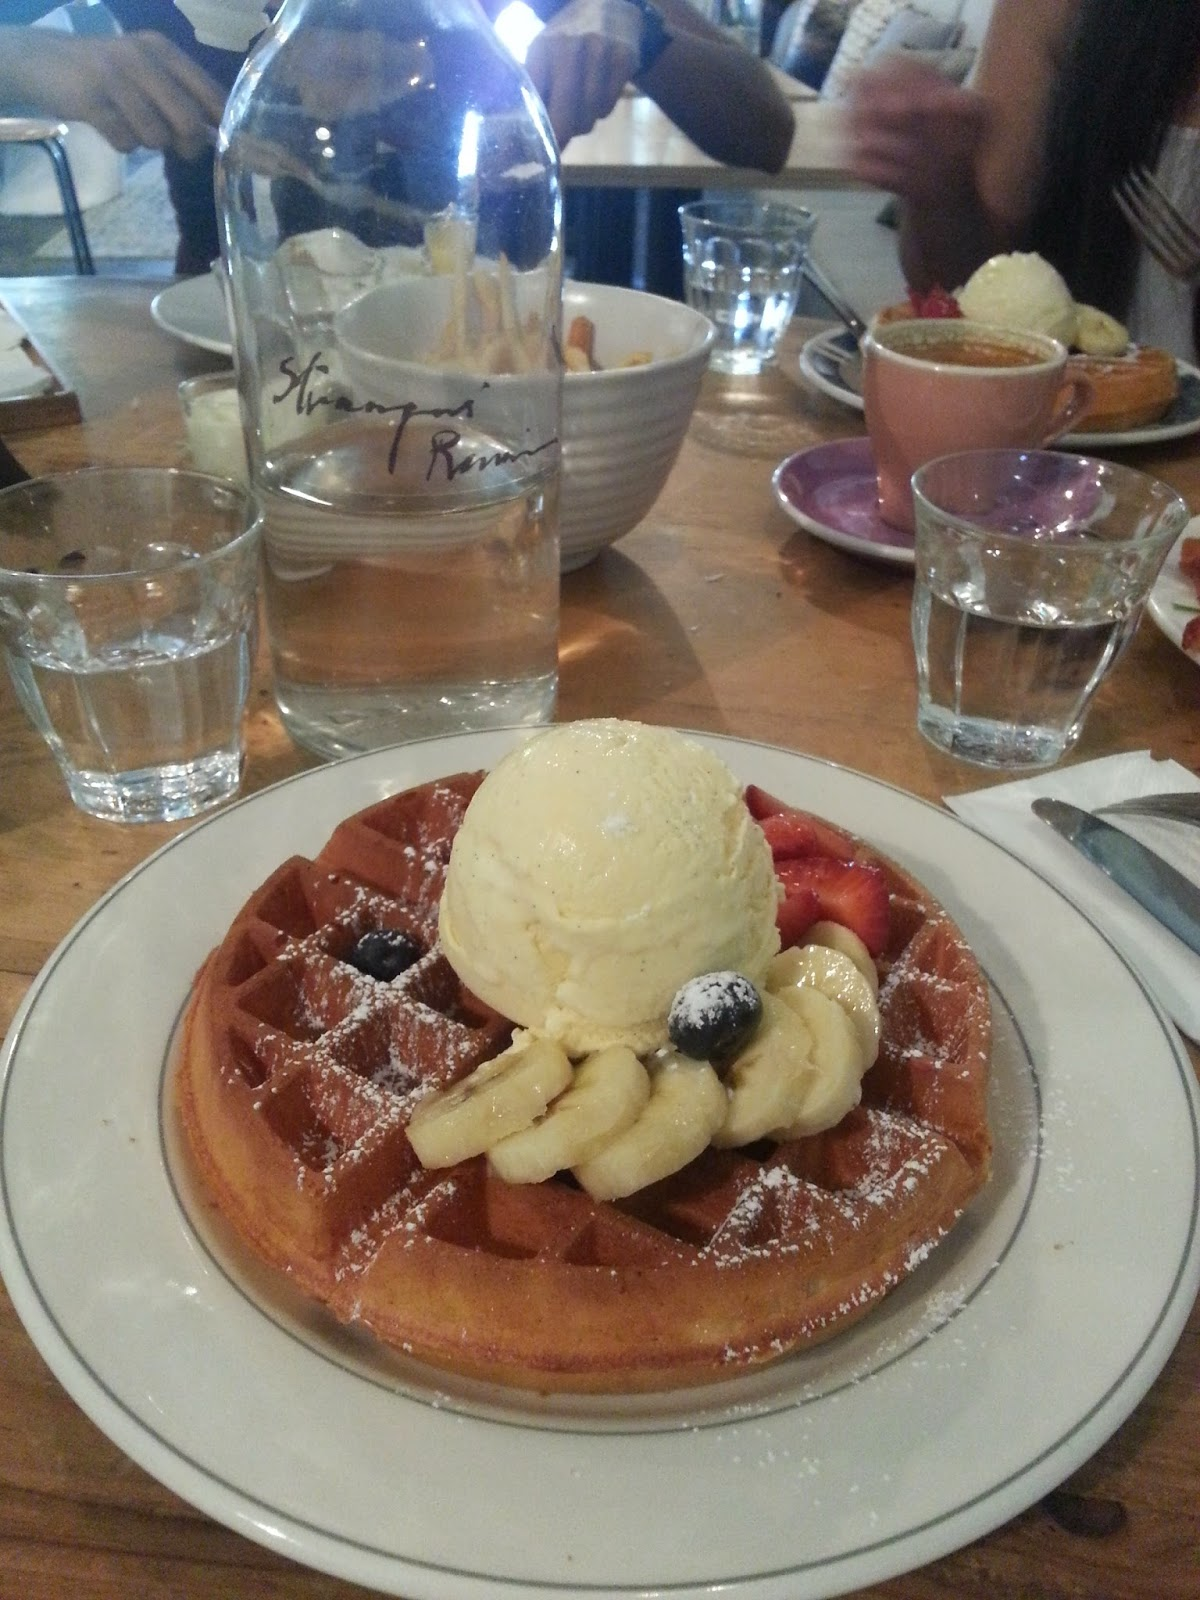 Strangers' Reunion buttermilk waffles with fresh fruits and vanilla bean ice cream